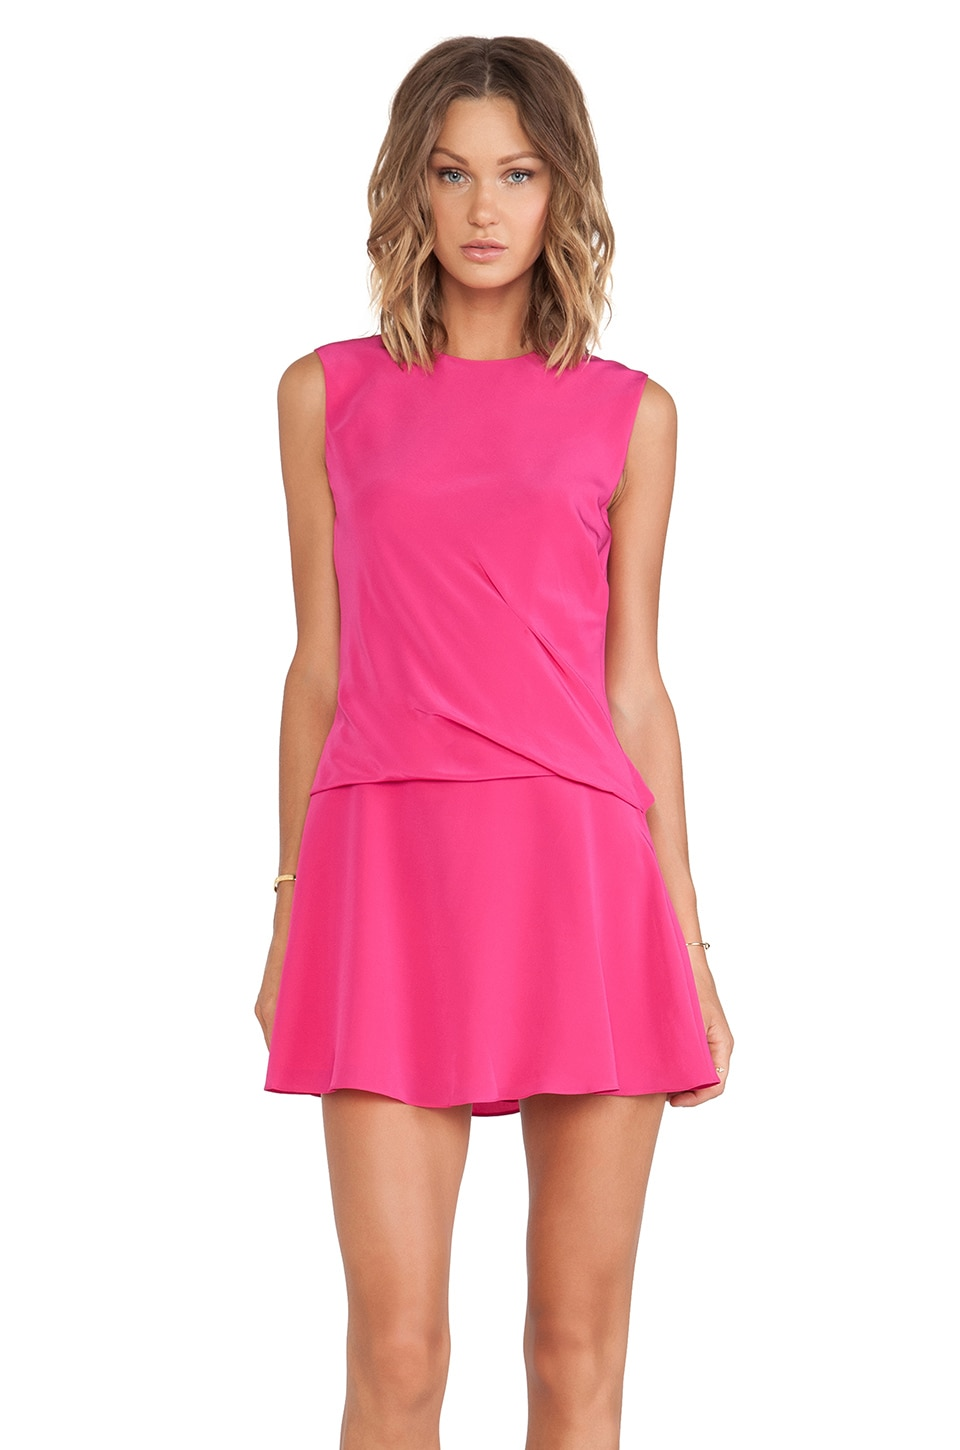 Thakoon Addition Draped Skirt Dress in Pink